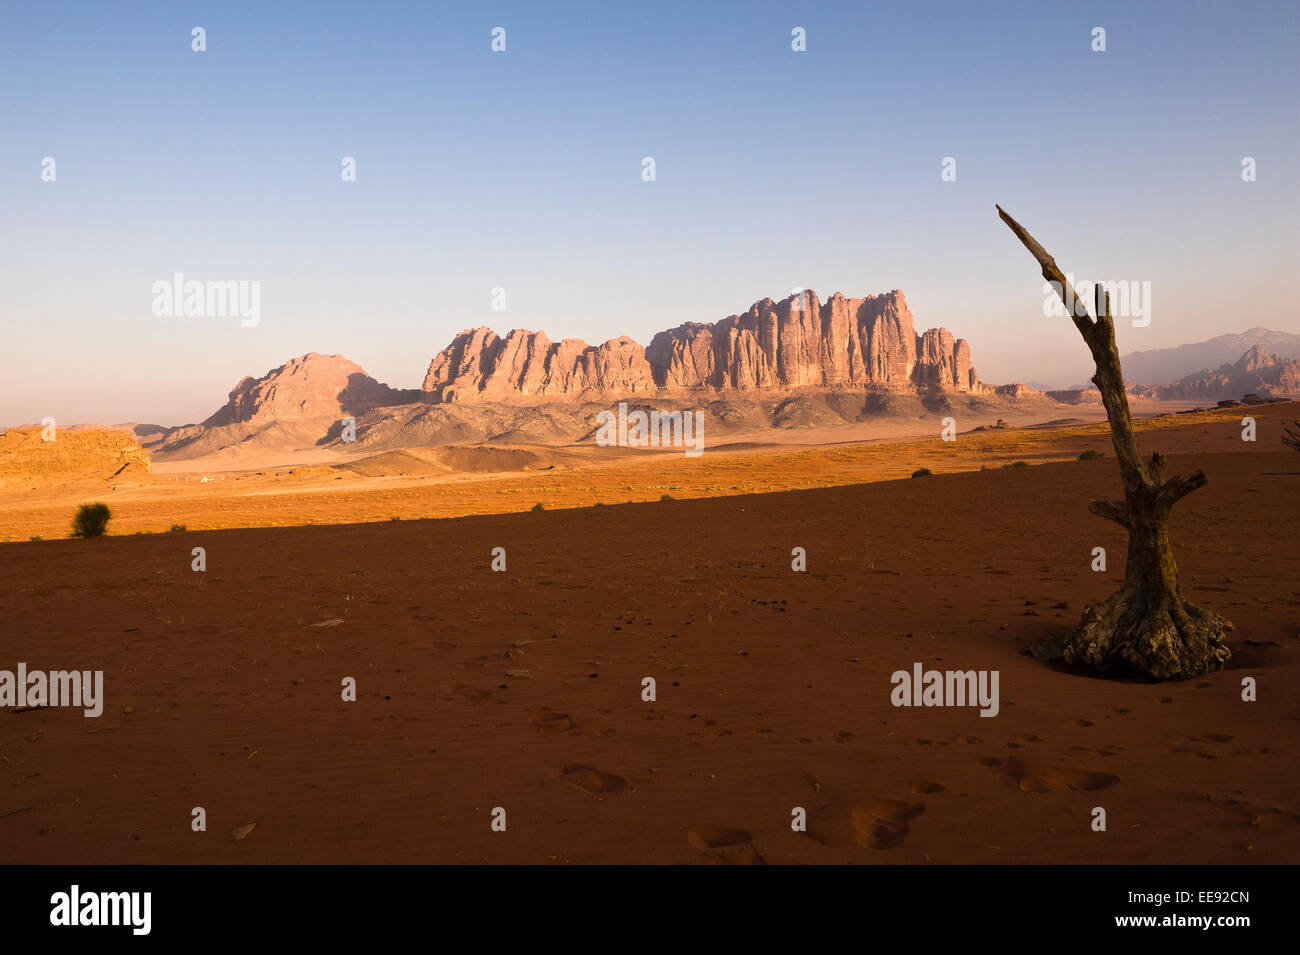 A view of Jebel Qattar, which is home to the most diversified wildlife in Wadi Rum National Park. Stock Photo